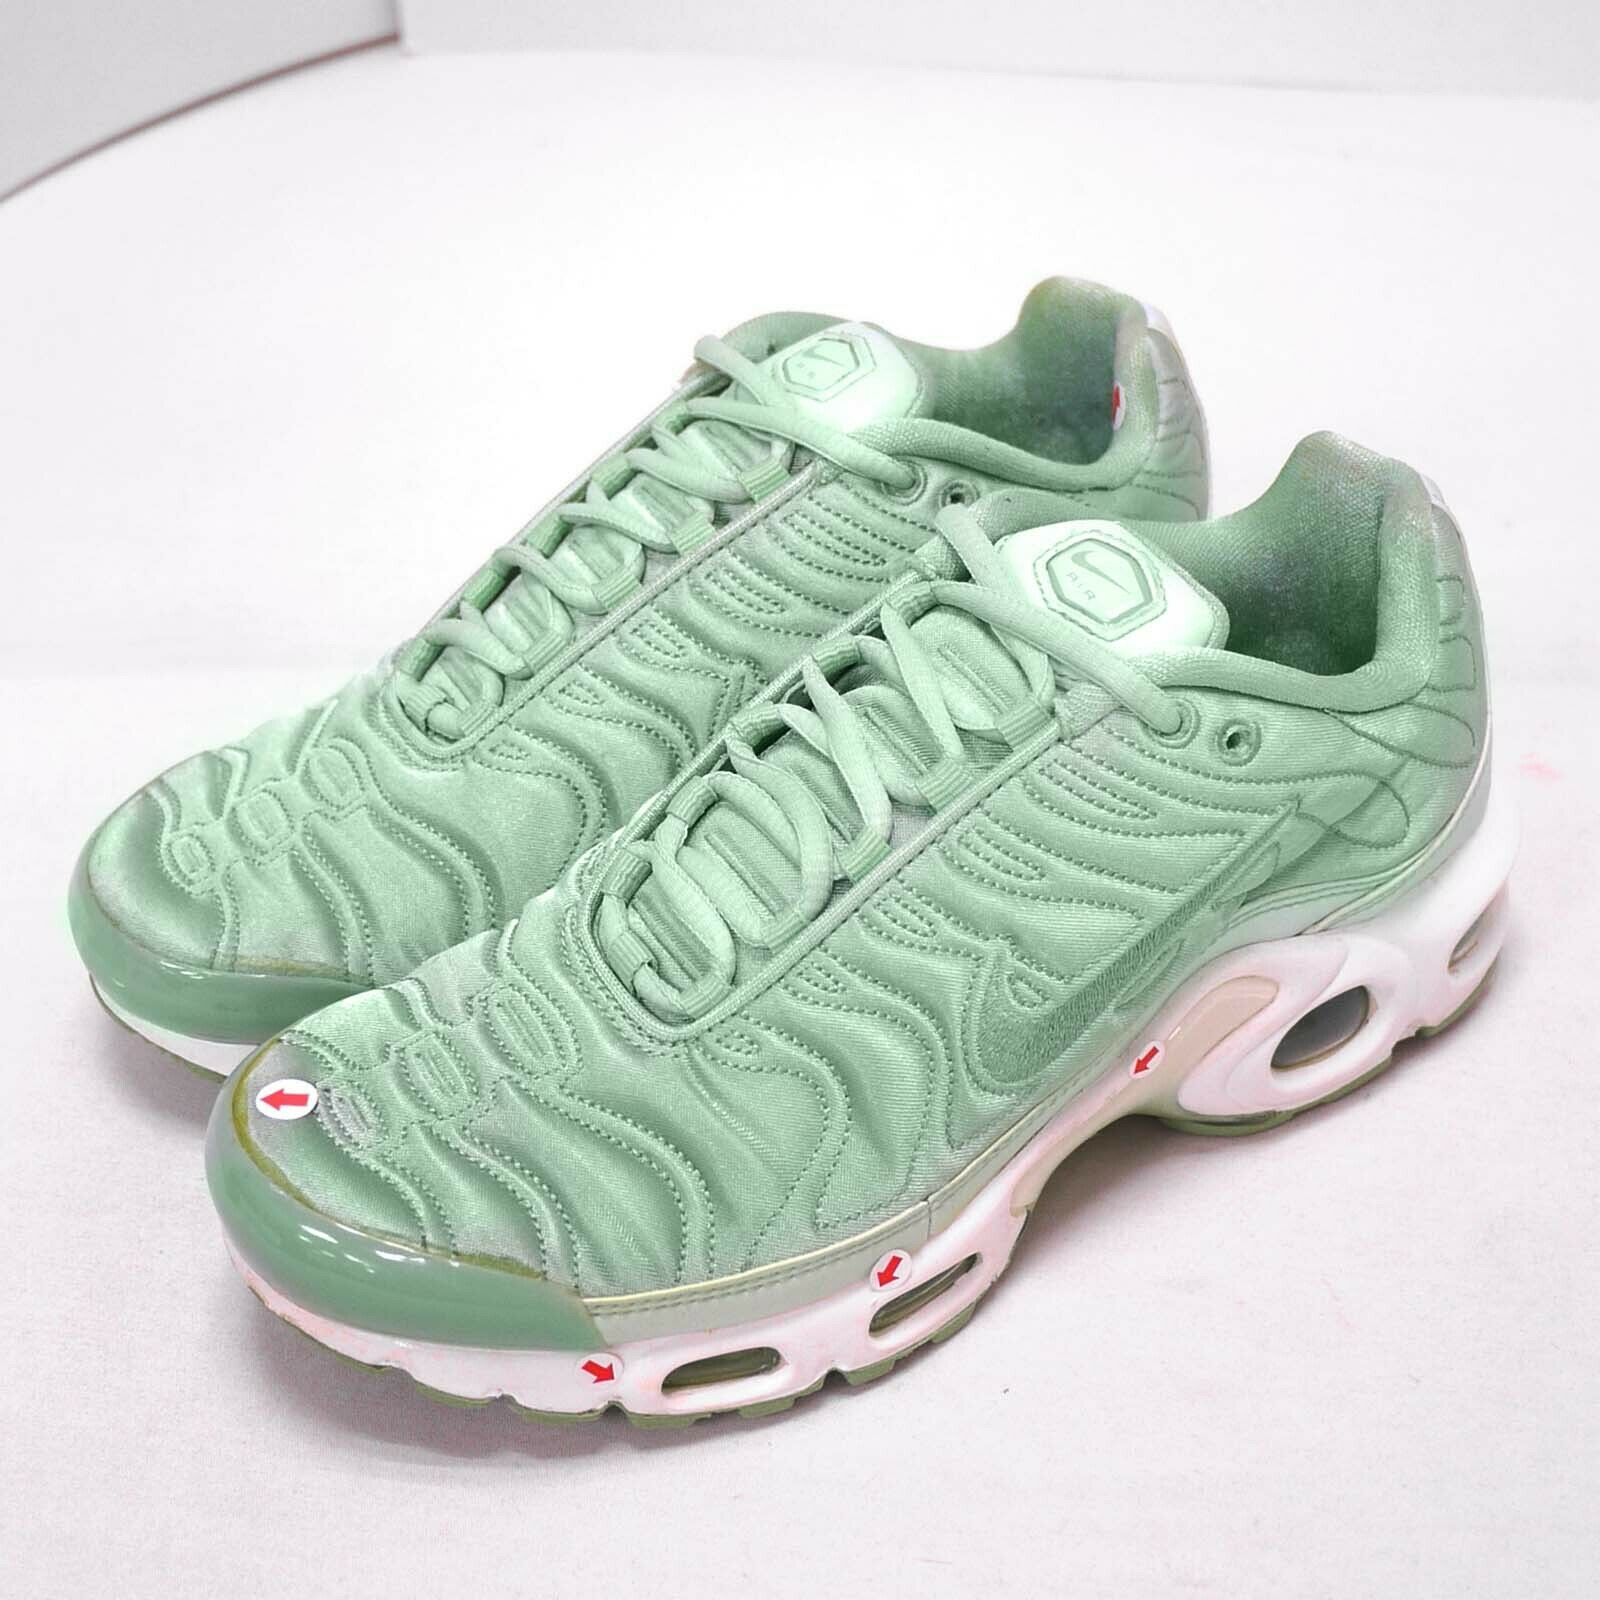 Nike  Wmns Air Max Plus SE Both Feet With Discoloration Women shoes 830768-331  online outlet sale